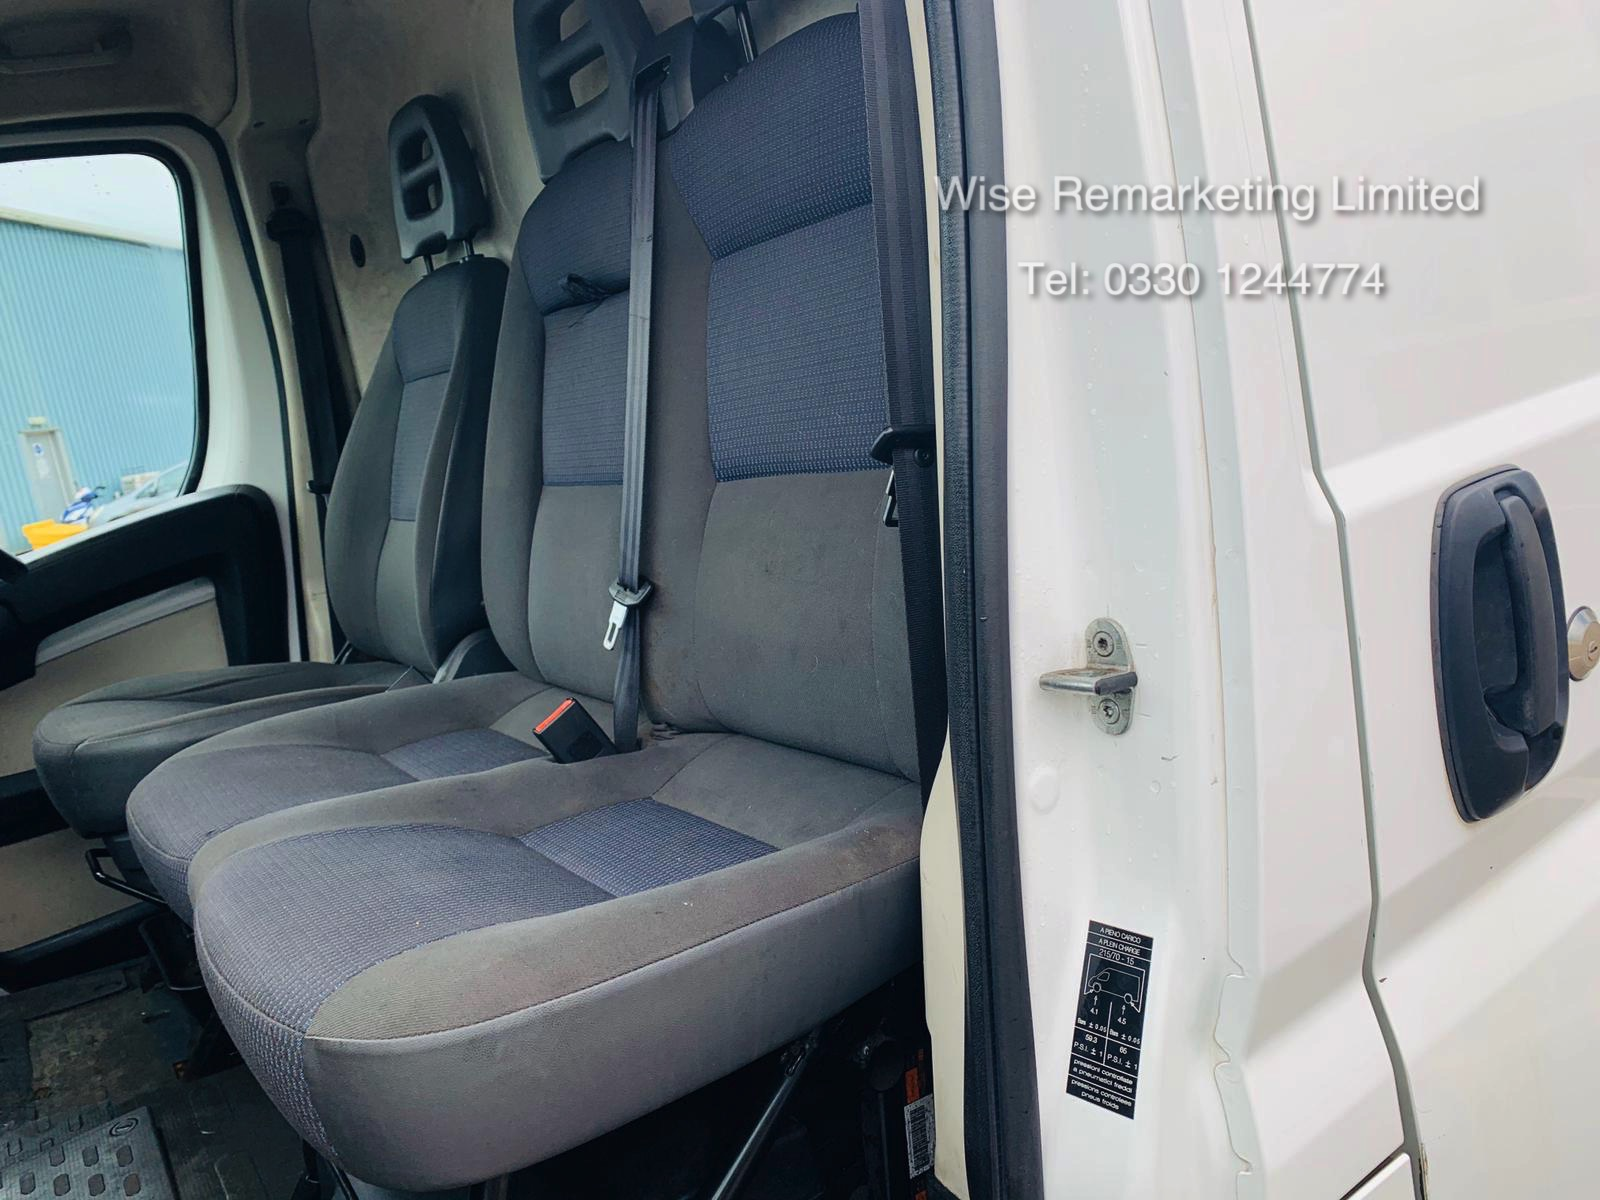 Citroen Relay 35 2.2 HDi (130 BHP) LWB 2012 12 Reg - 6 Speed - Ply Lined SAVE 20% NO VAT - Image 11 of 20